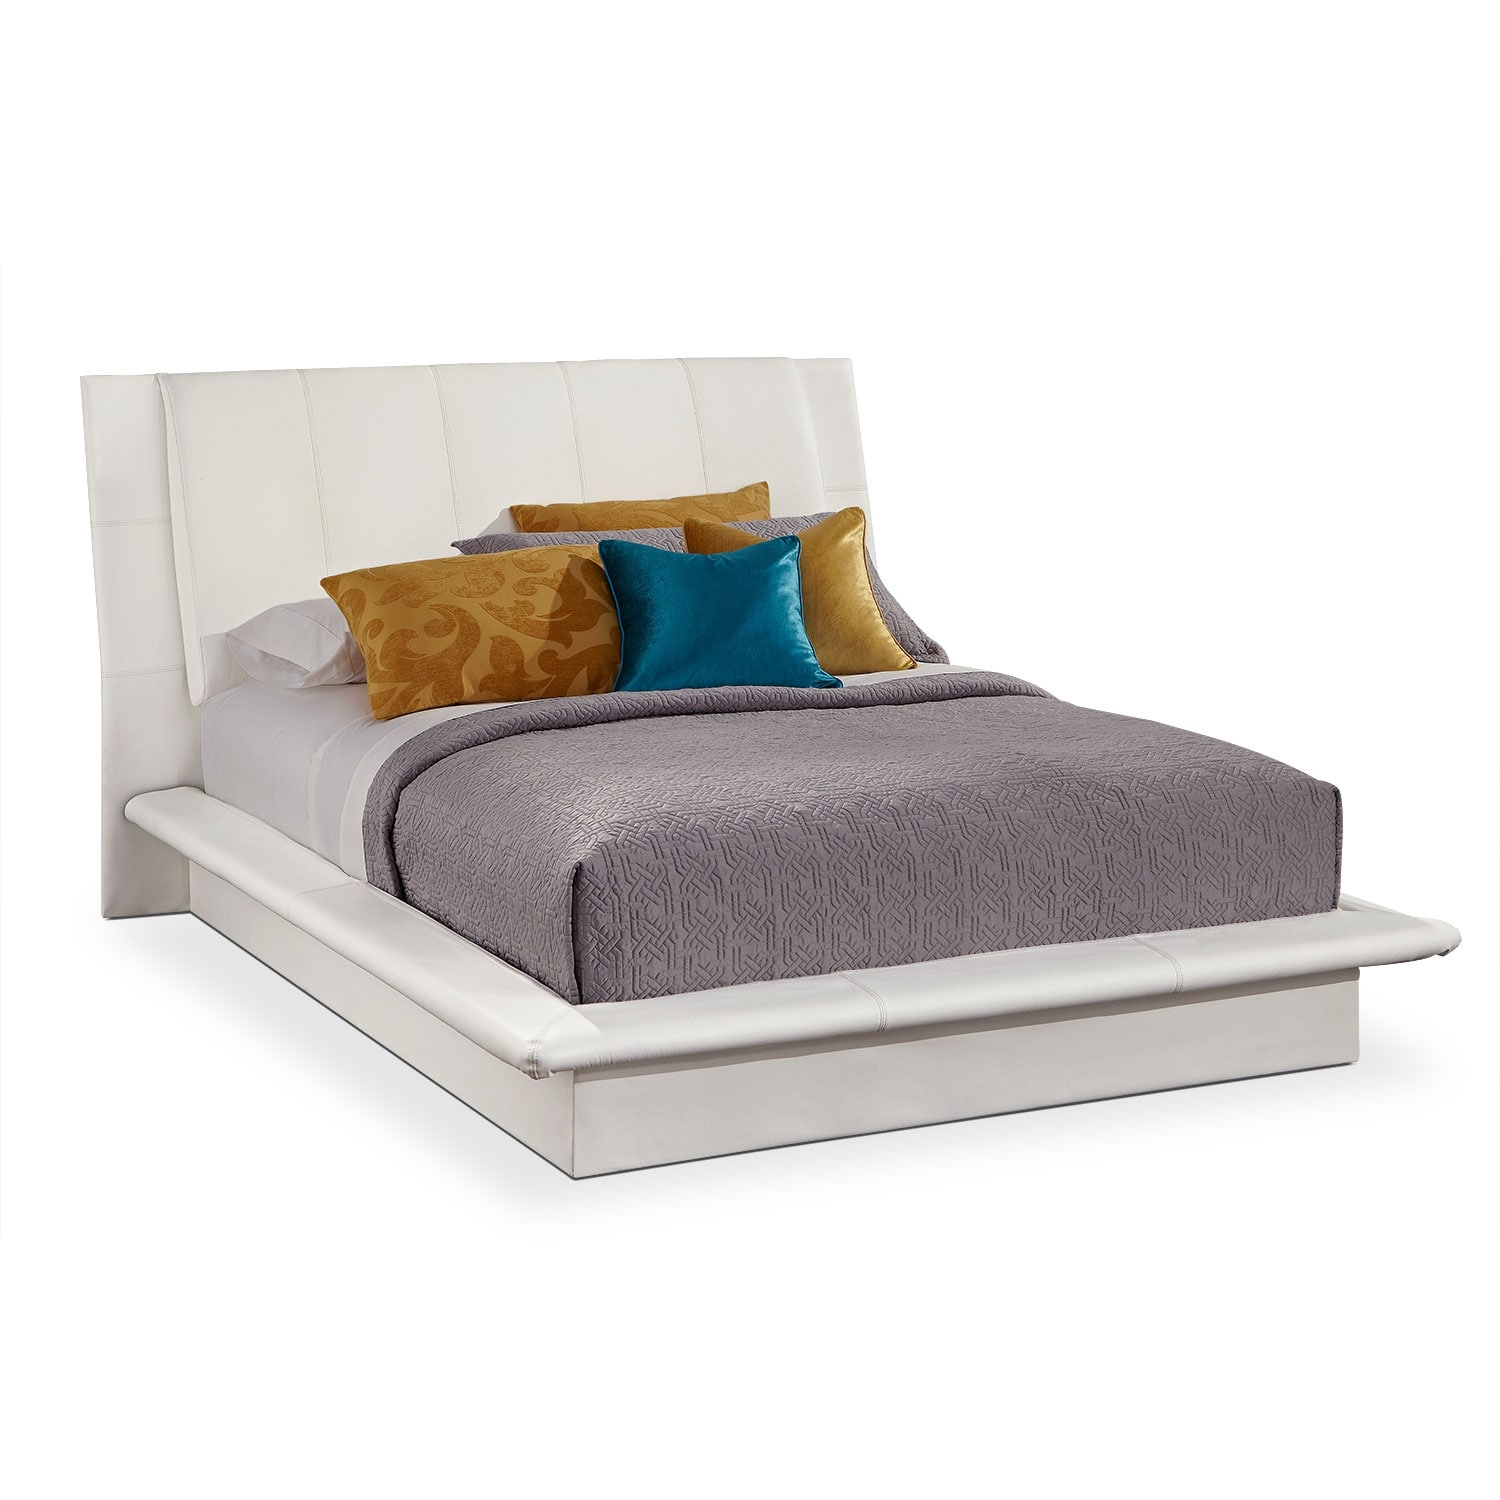 value city furniture mattress dimora white bed value city furniture 17692